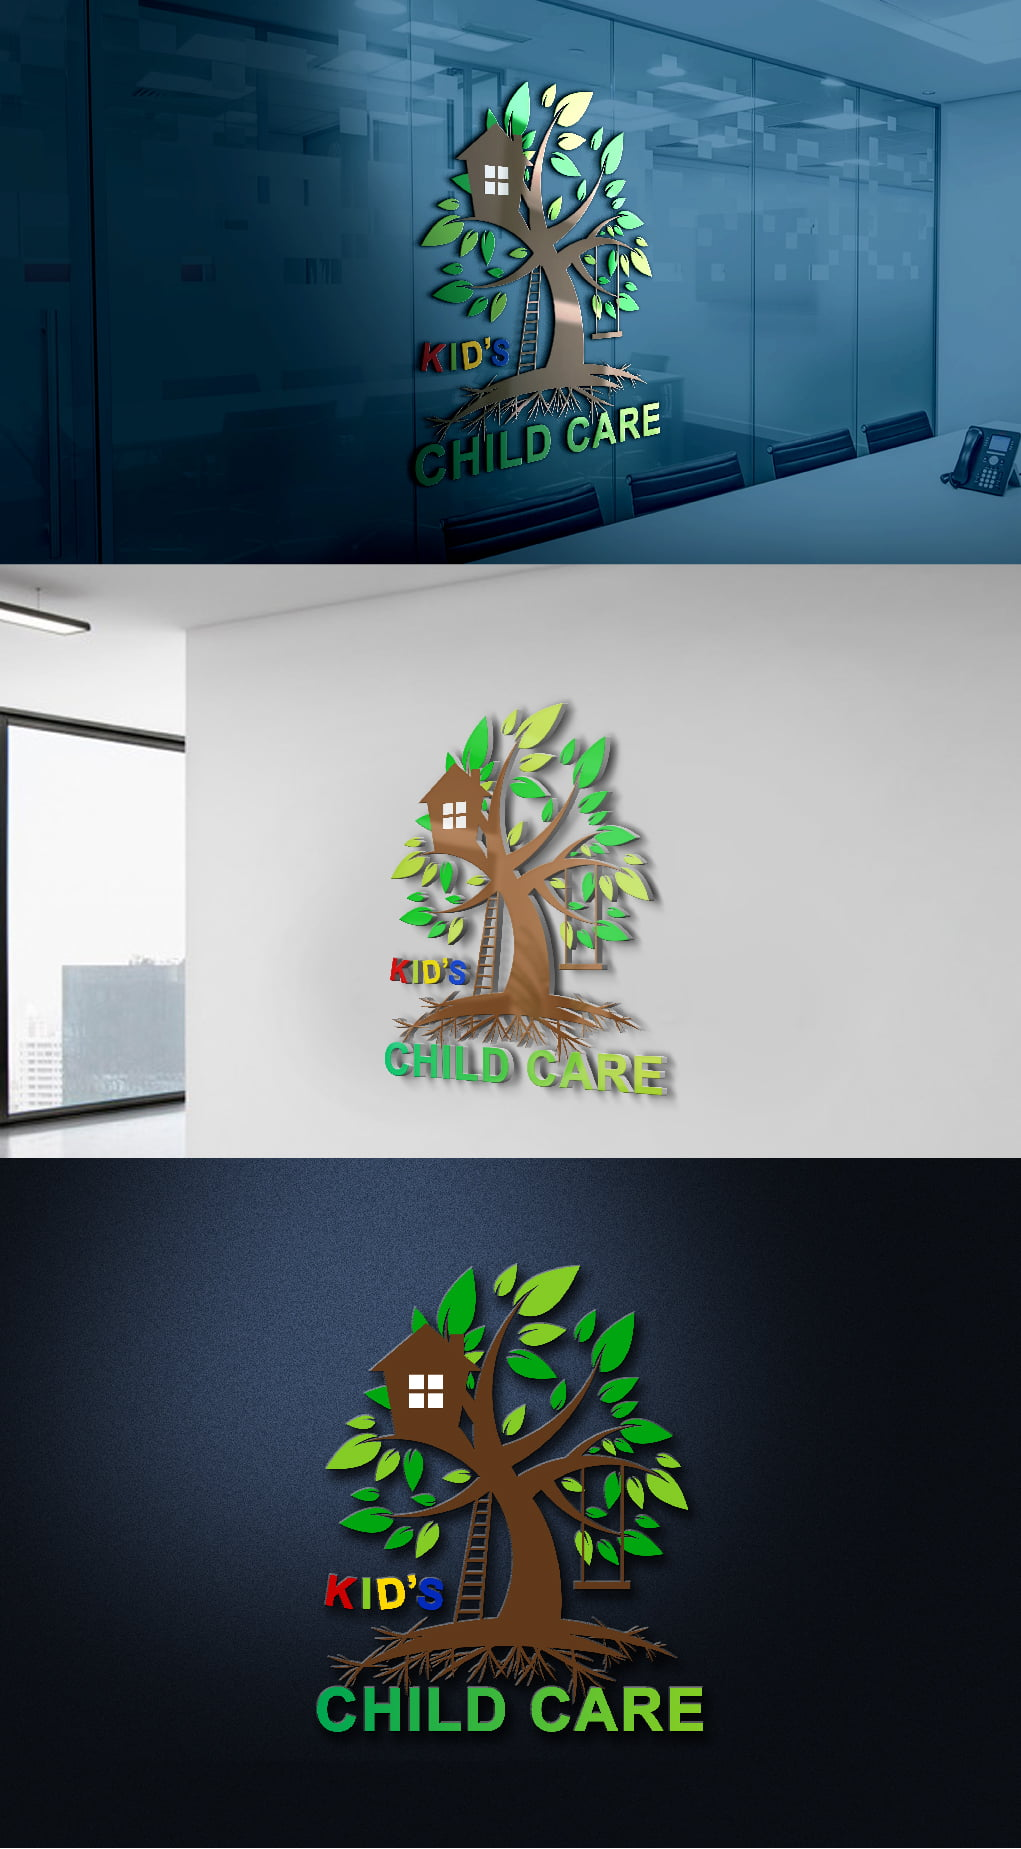 Kids child care logo template